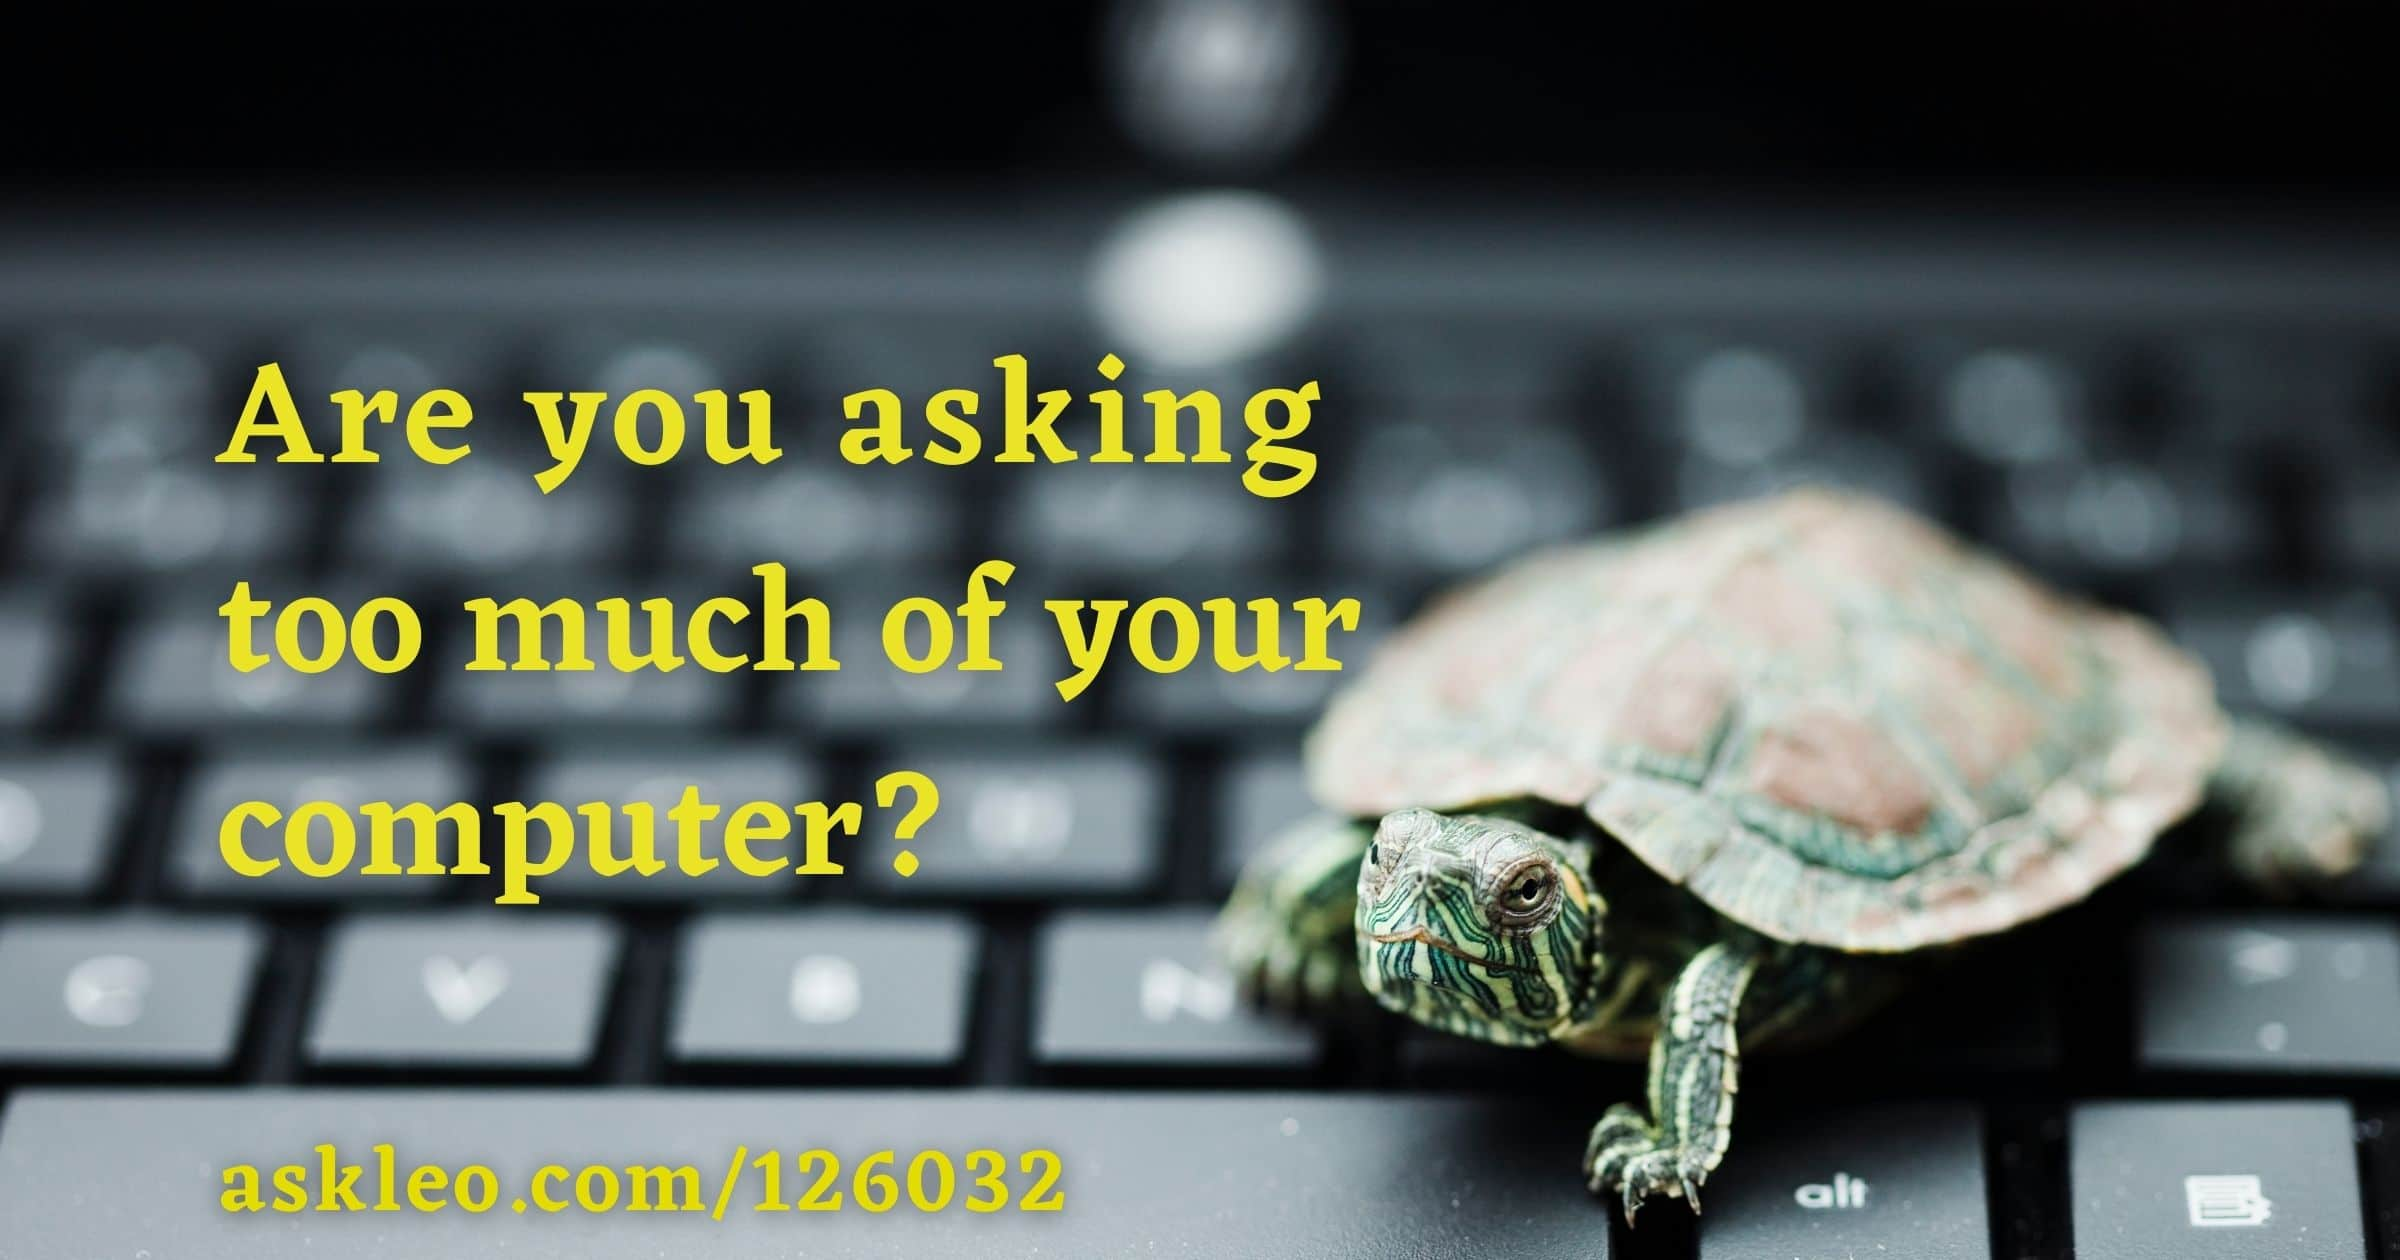 Are You Asking Too Much of Your Computer?